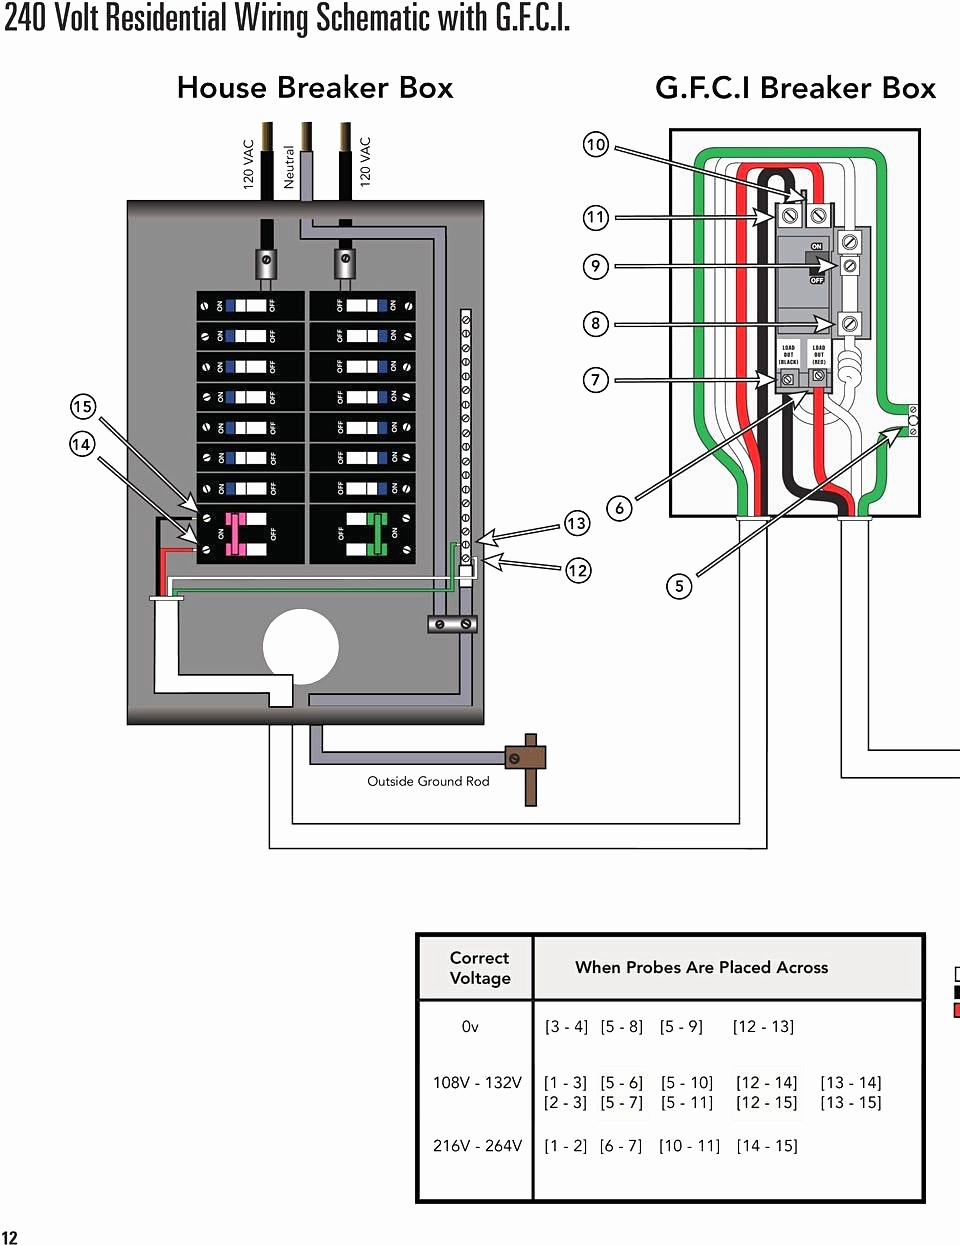 medium resolution of ground fault receptacle wiring diagram download simple wiring diagram gfci outlet unique unusual ground fault download wiring diagram